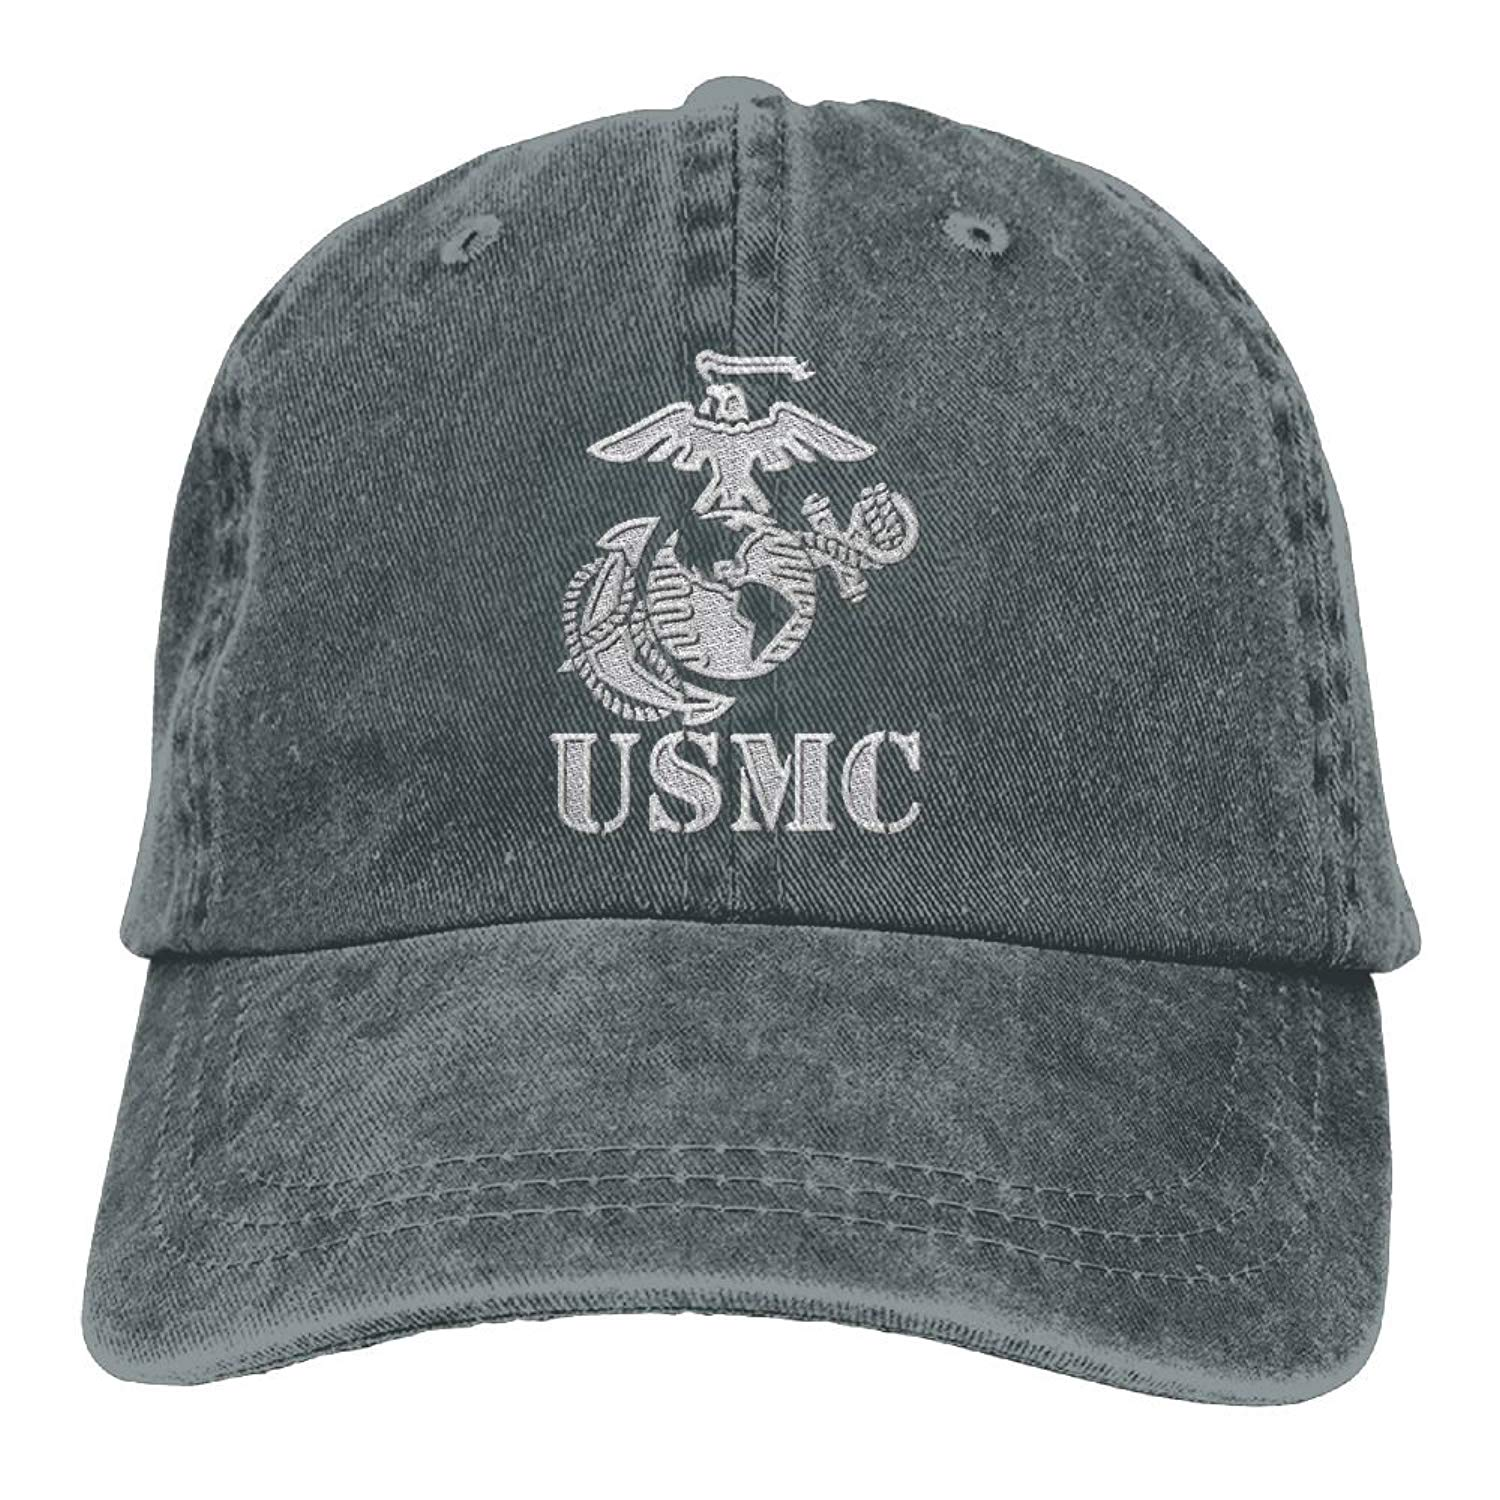 18700c45906 Get Quotations · Eagle Globe Anchor USMC Marine Corps - Embroidered Retro  Denim Baseball Hat Trucker Hat Dad Hat